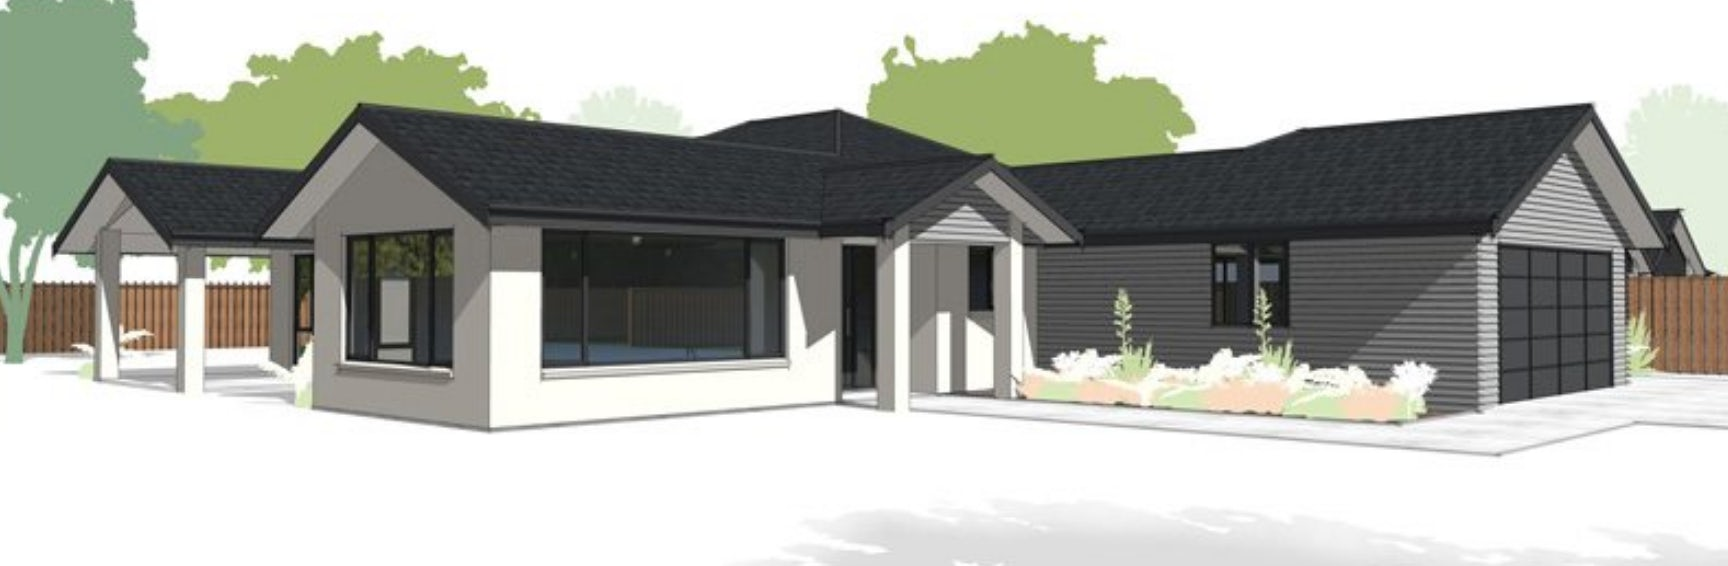 Home Rendering Example by Urban